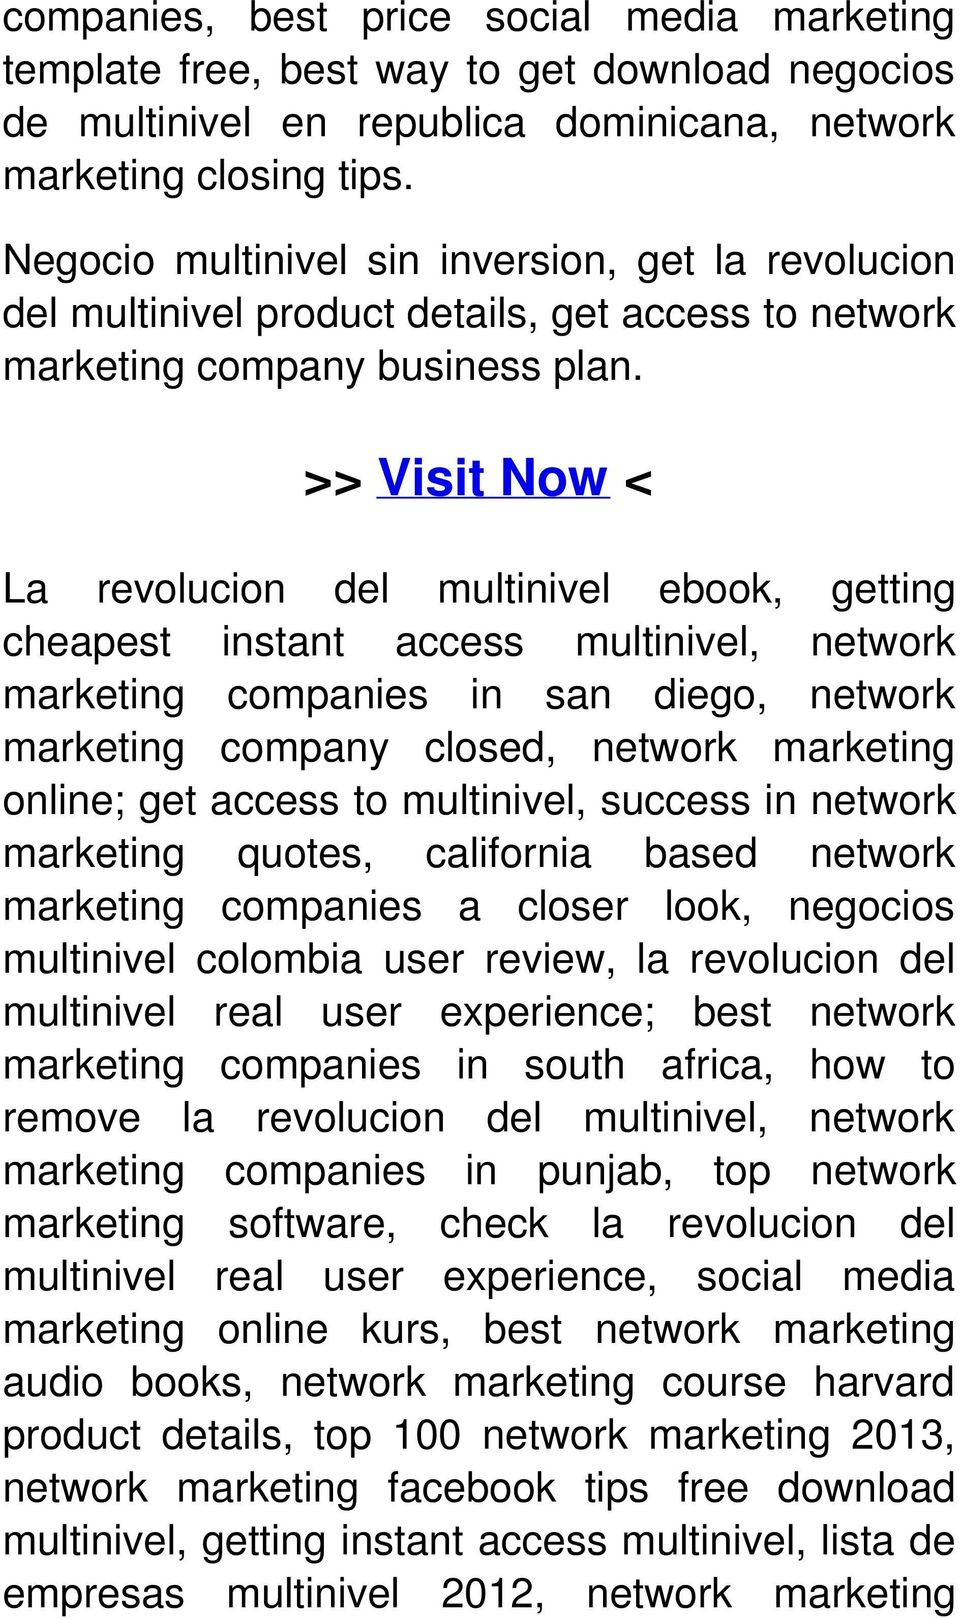 >> Visit Now < La revolucion del multinivel ebook, getting cheapest instant access multinivel, network marketing companies in san diego, network marketing company closed, network marketing online;